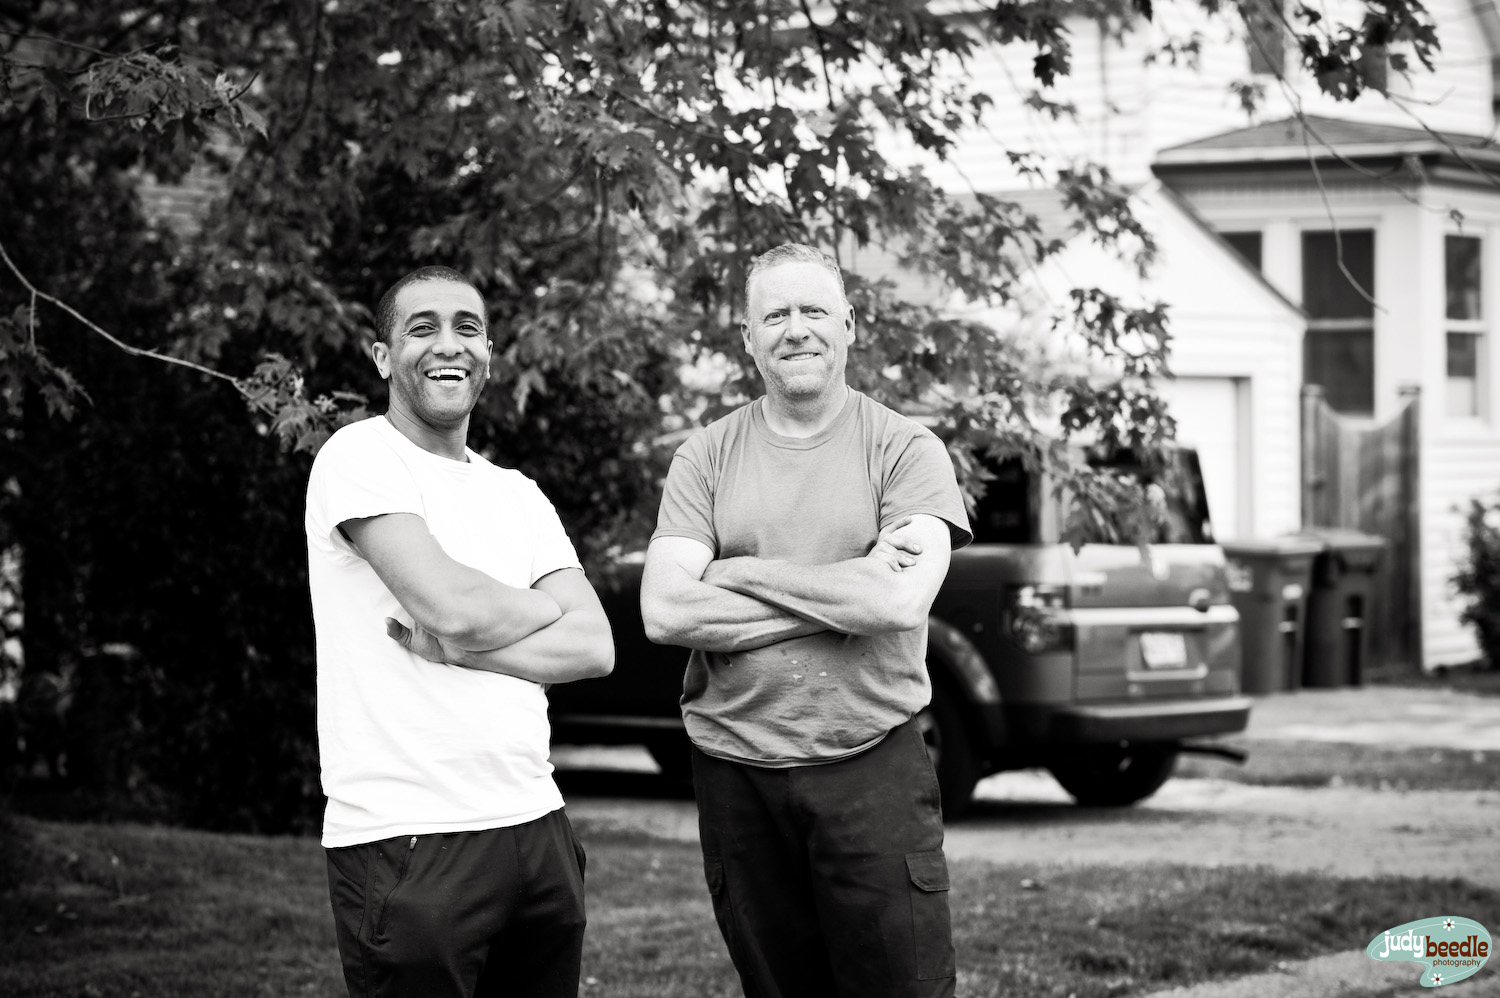 6/4. Nabil and Scott reunited | South Portland, Maine.